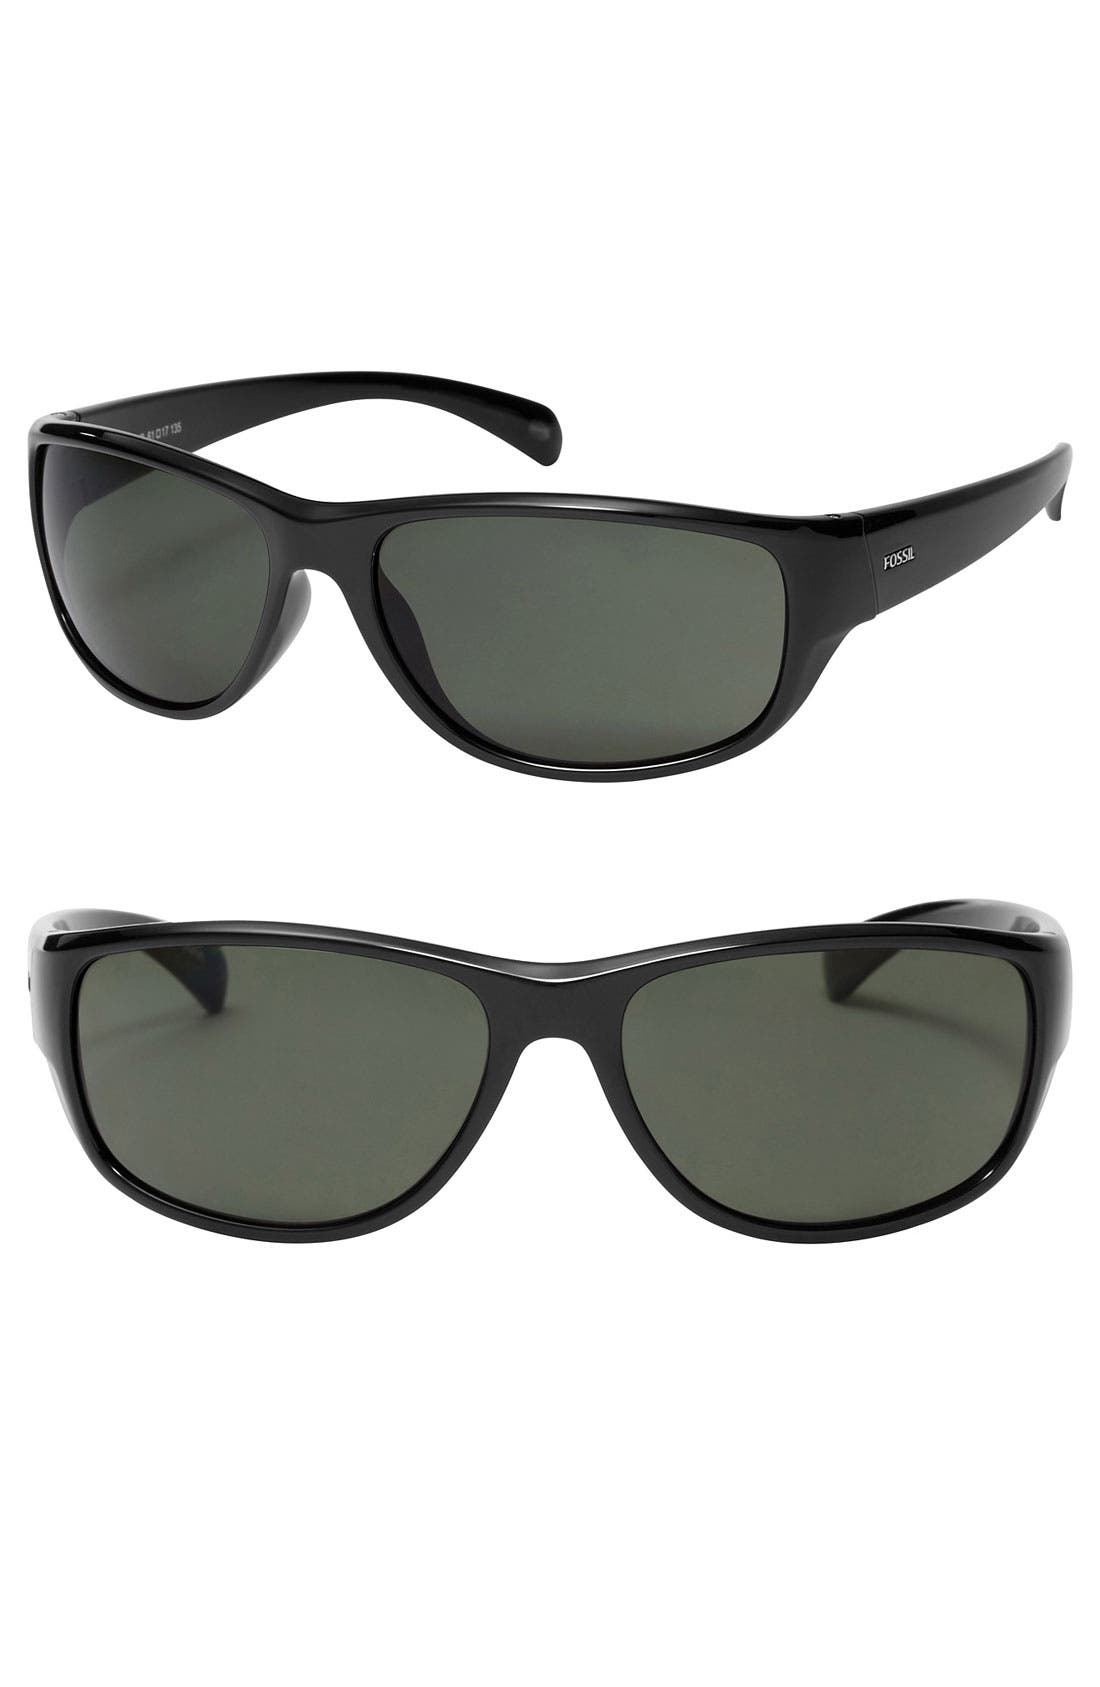 Alternate Image 1 Selected - Fossil 'Blake' 61mm Sunglasses